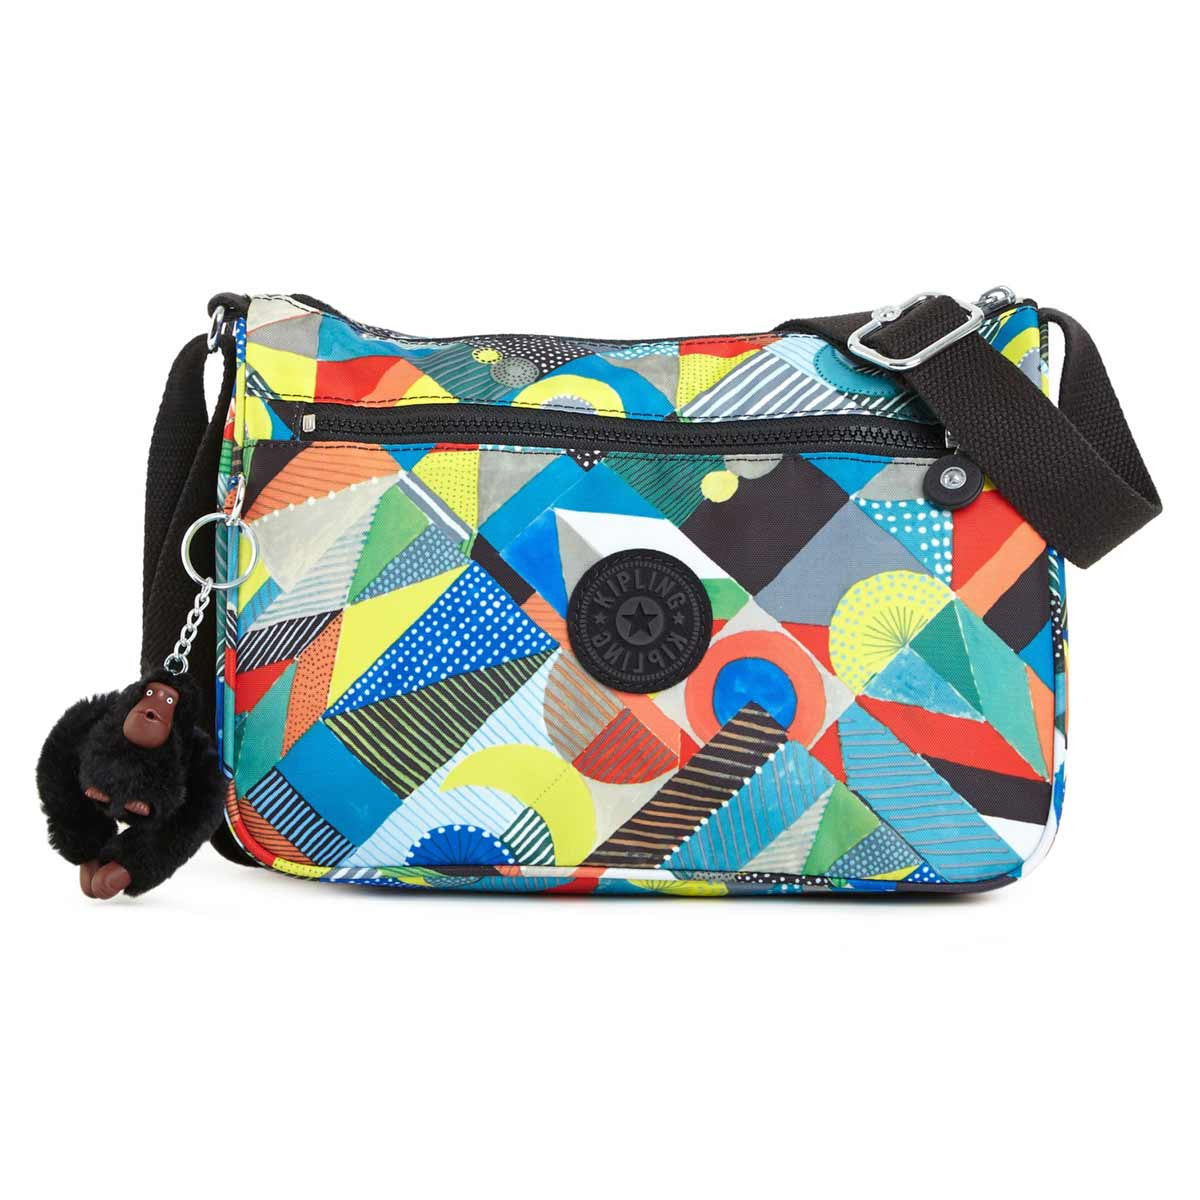 Kipling HB6492-901 Women's Callie Abstract Beauty Printed Nylon Crossbody Handbag